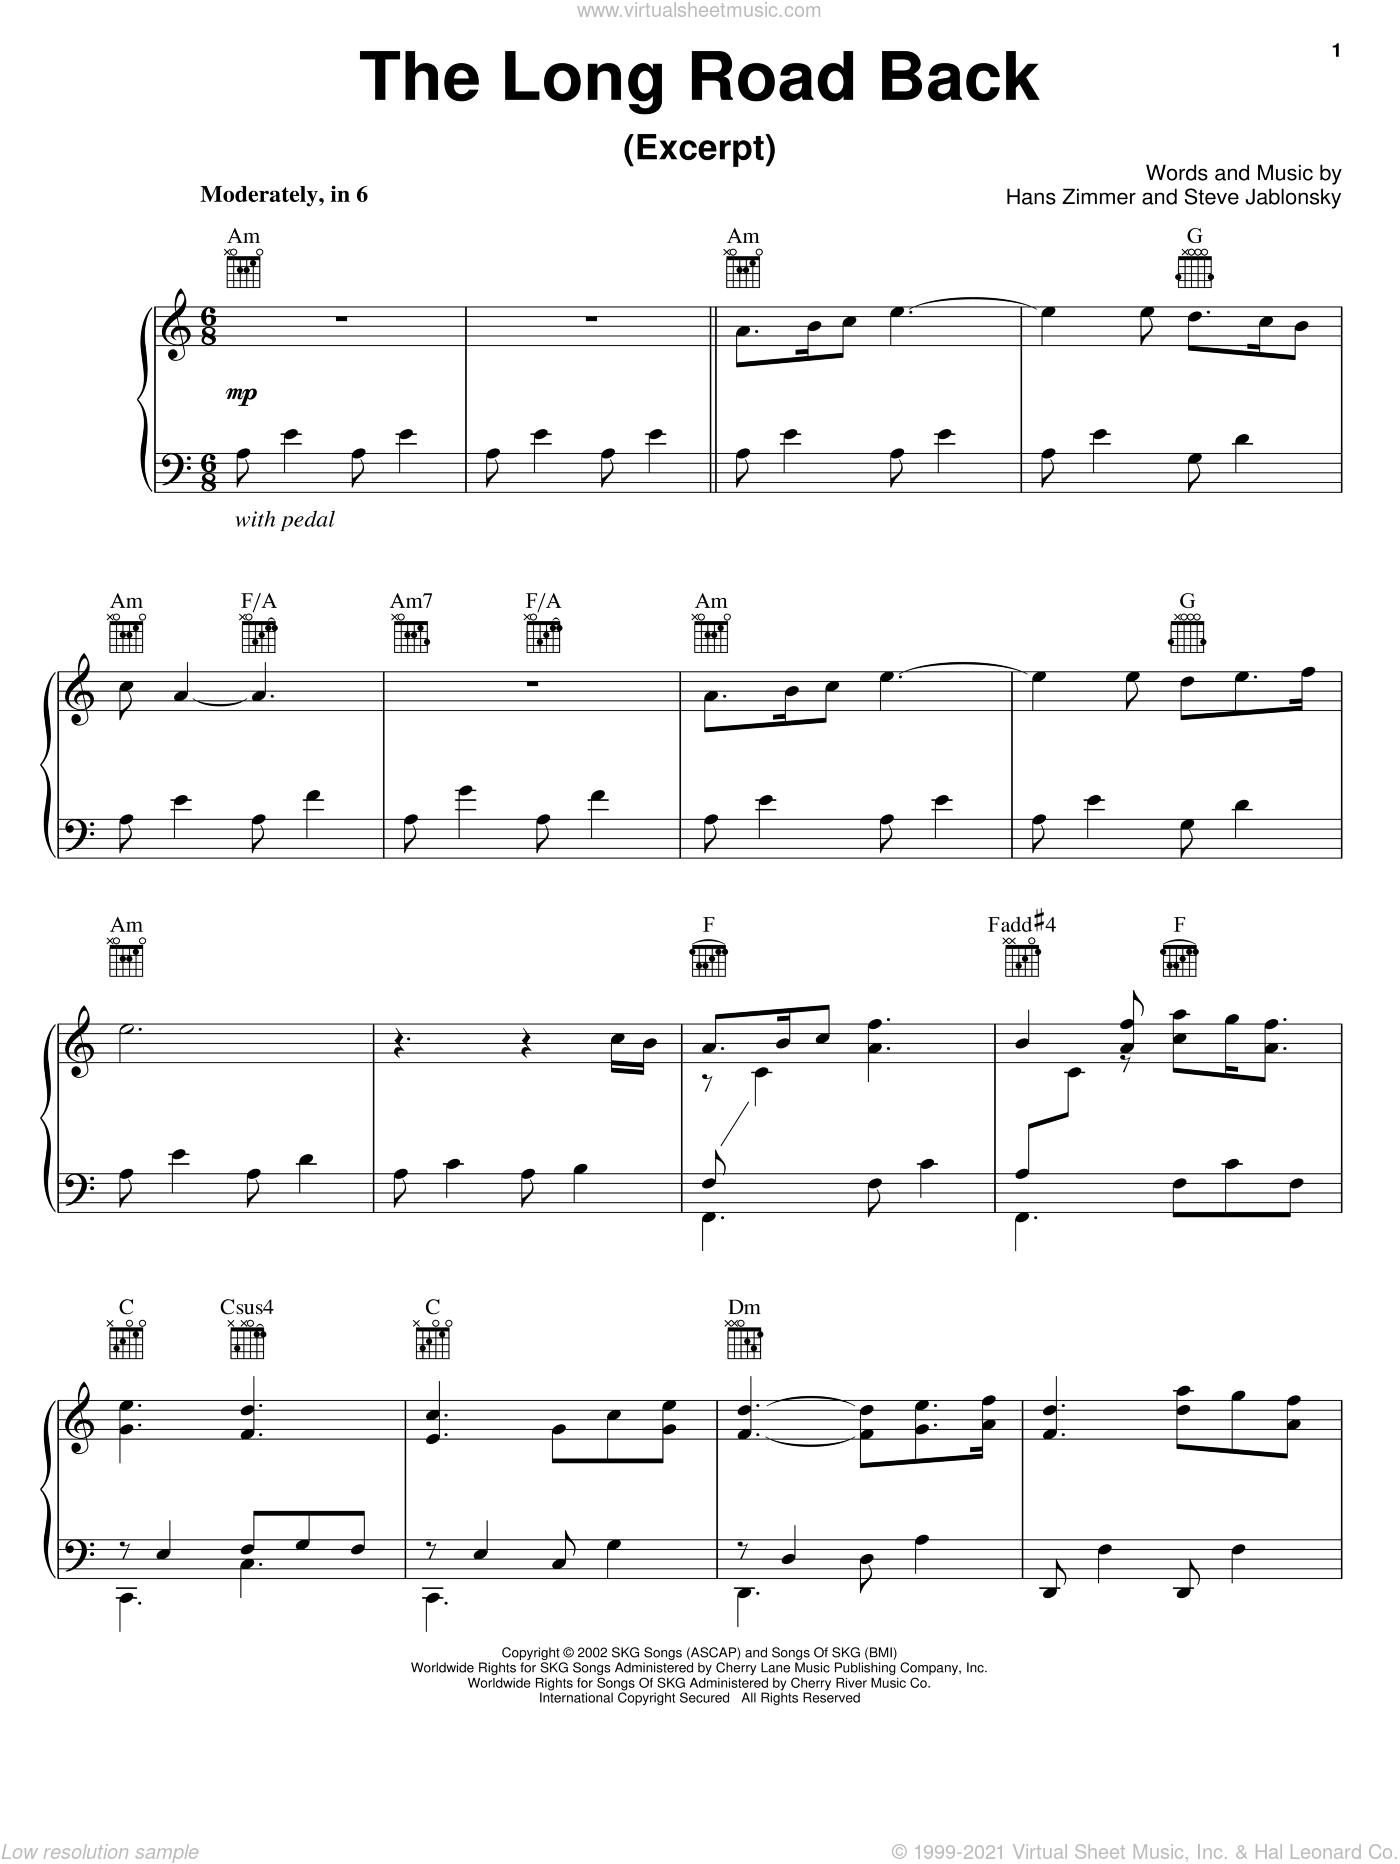 The Long Road Back sheet music for voice, piano or guitar by Steve Jablonsky